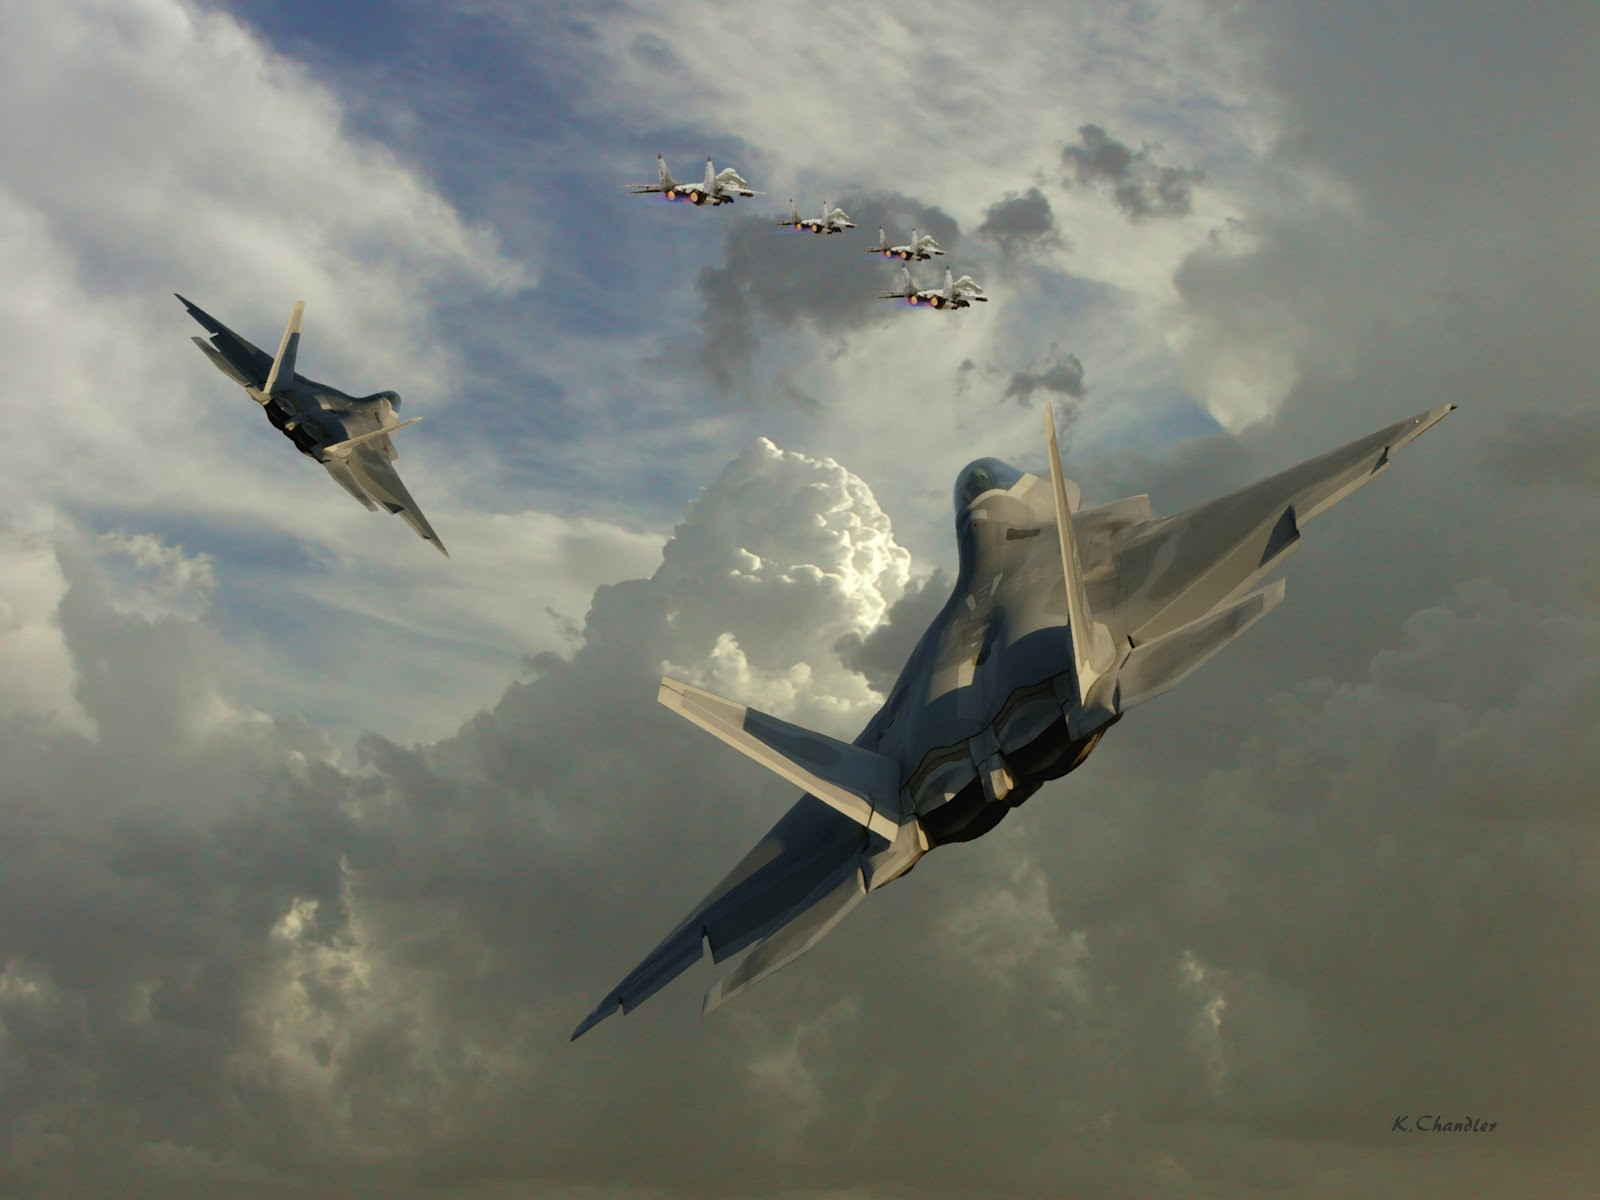 10 Aircraft hd wallpapers-aircraft wallpapers - ONLINE NEWS ICON